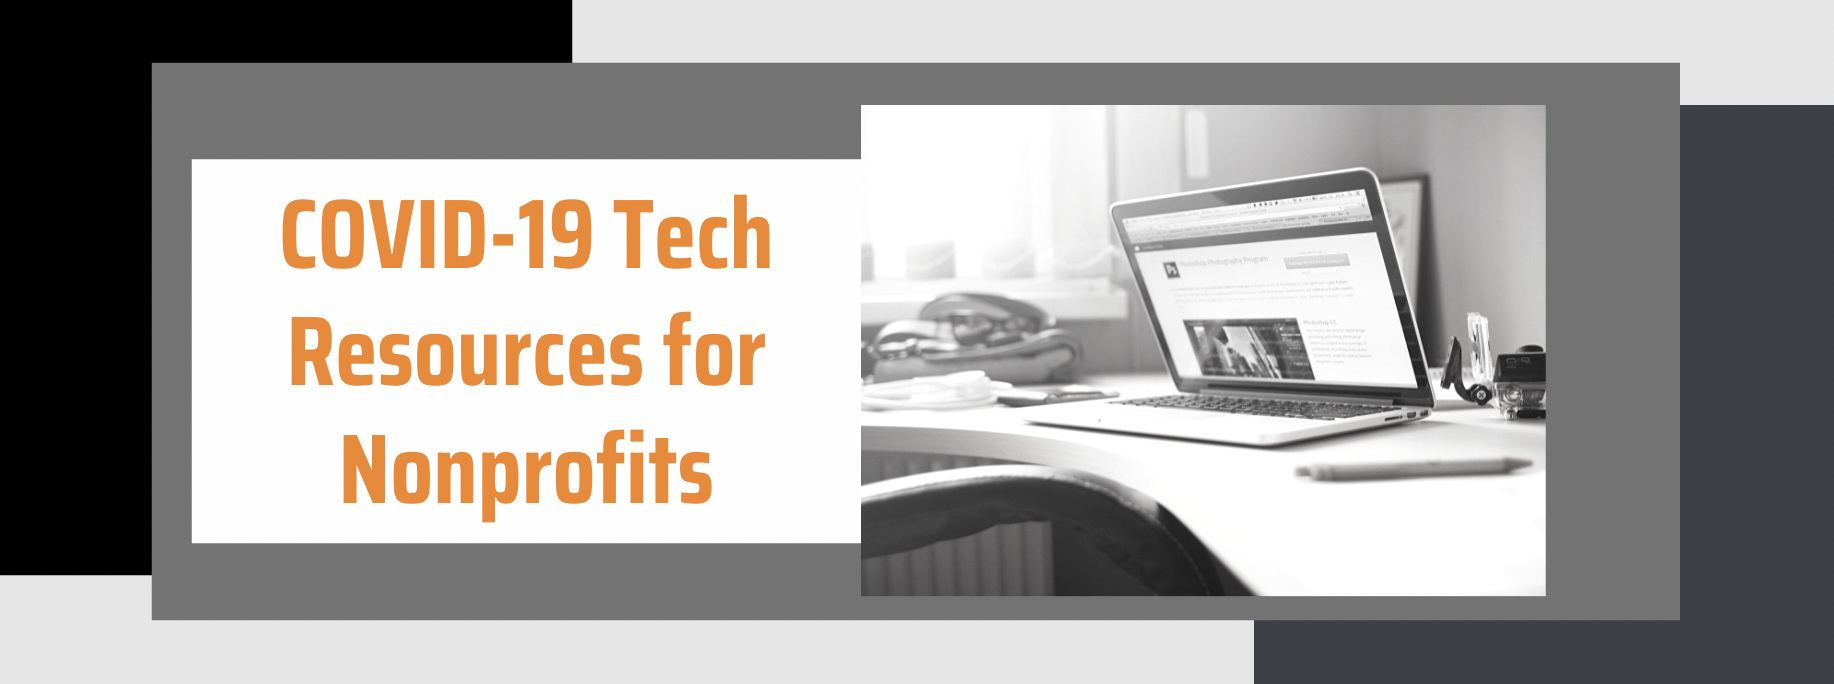 Covid-19 Tech Resources for Nonprofits